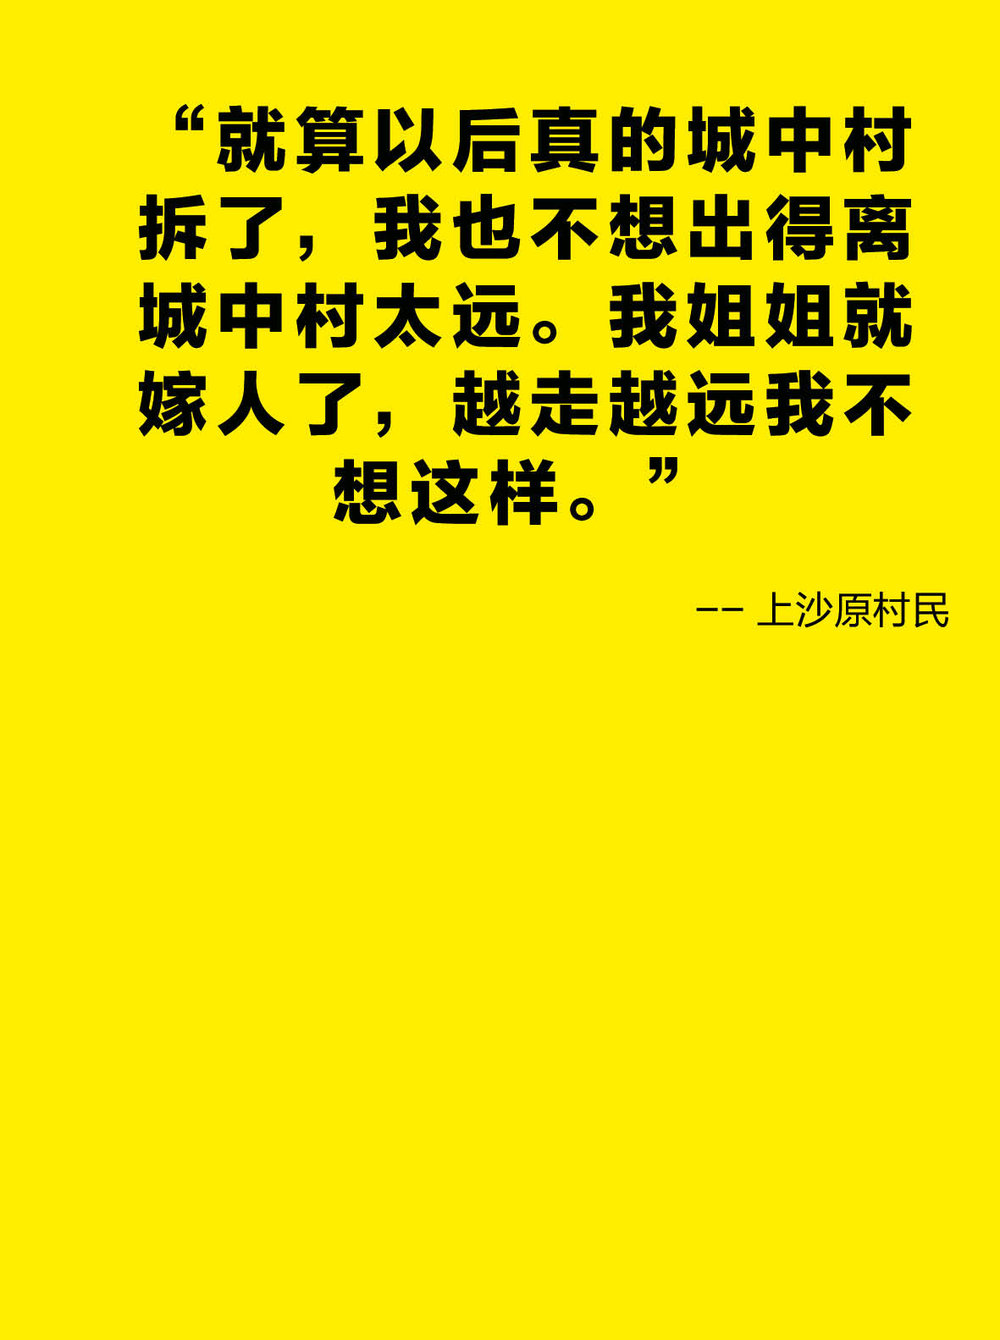 20180106_Shangsha Quotes test0316.jpg